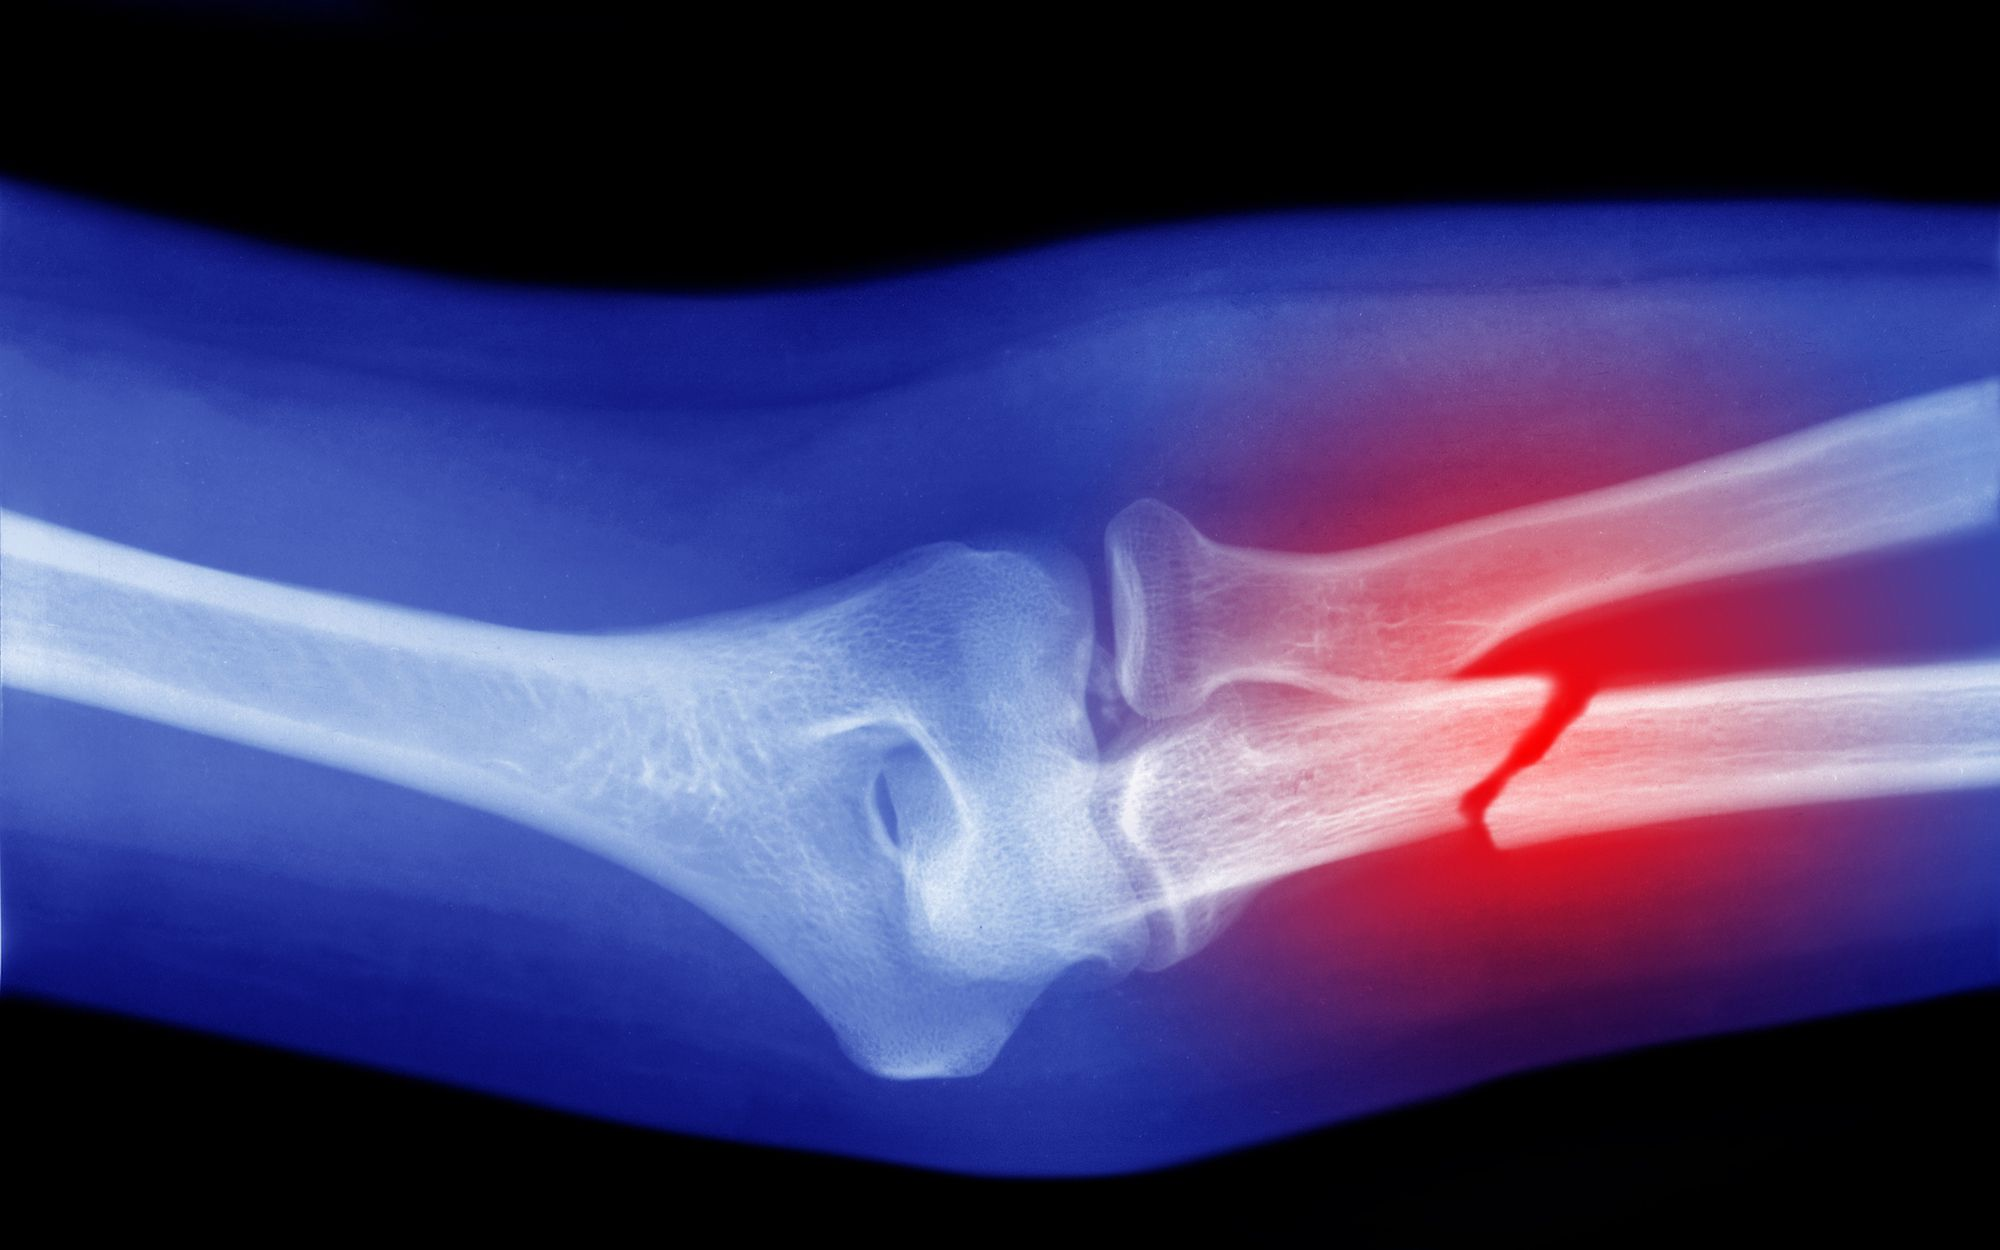 Fracture vs. Break: Is One Worse Than the Other?